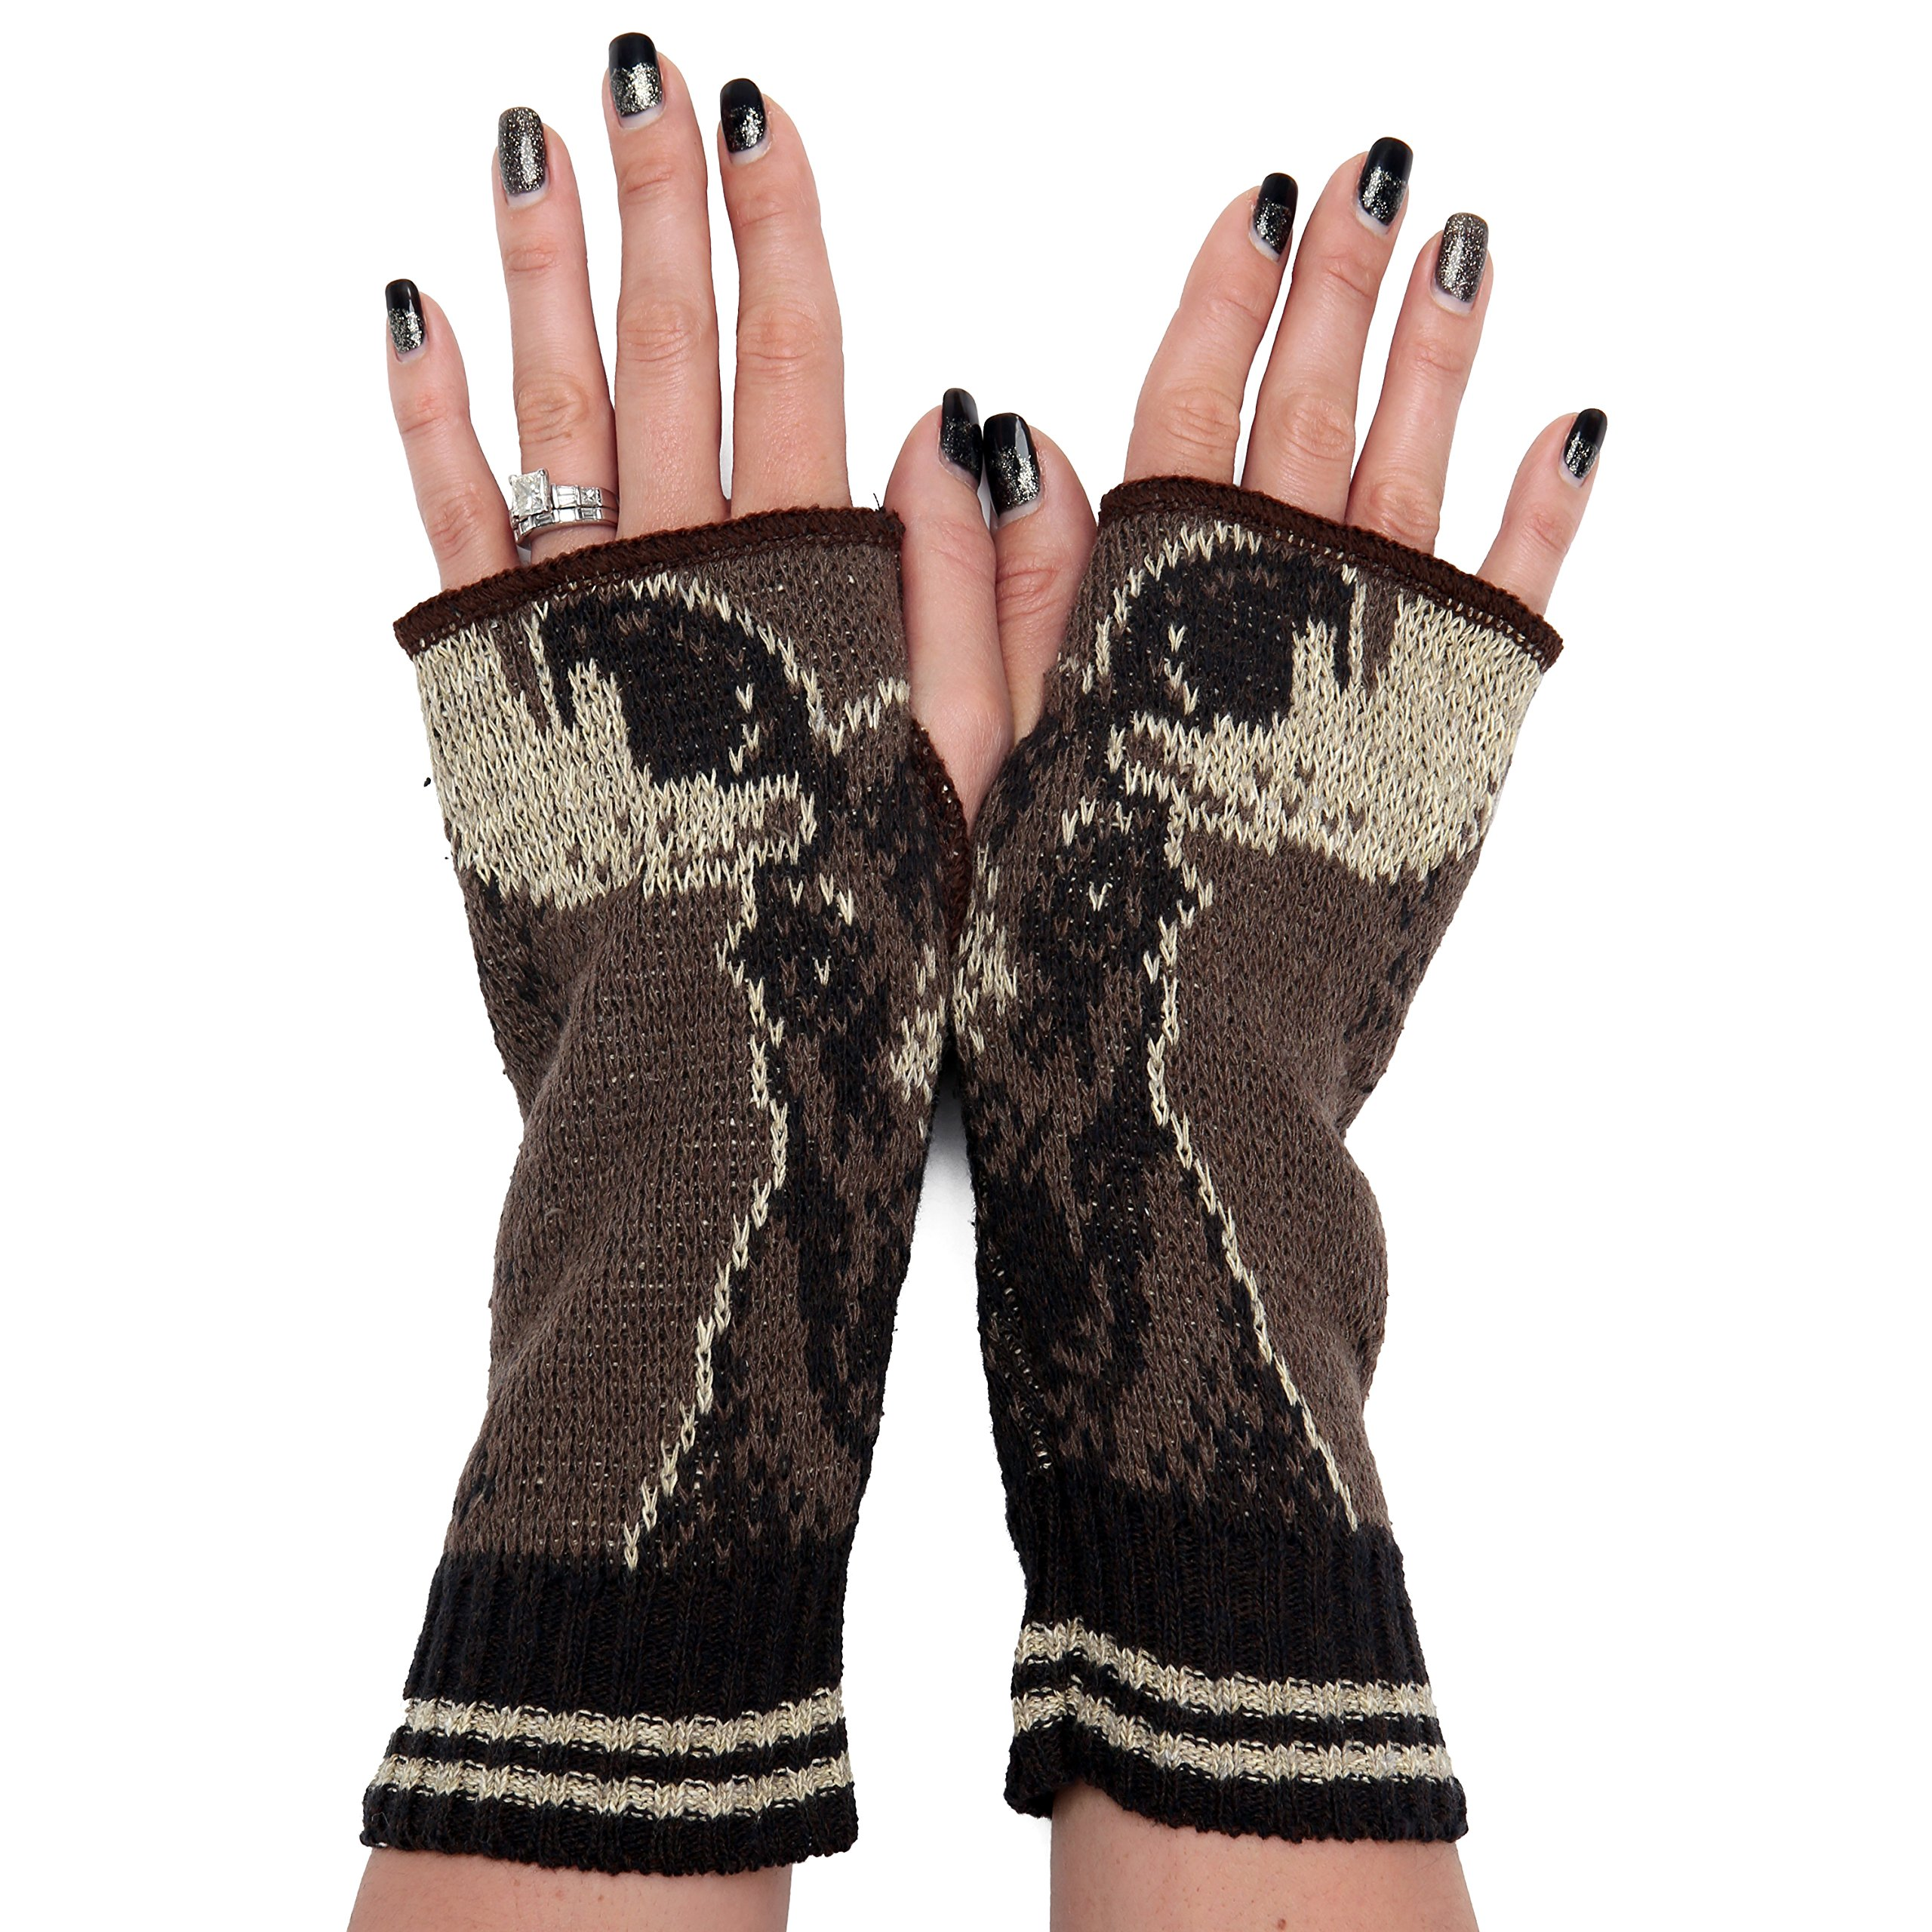 Green 3 Women's Handwarmers Made in USA (Moose)